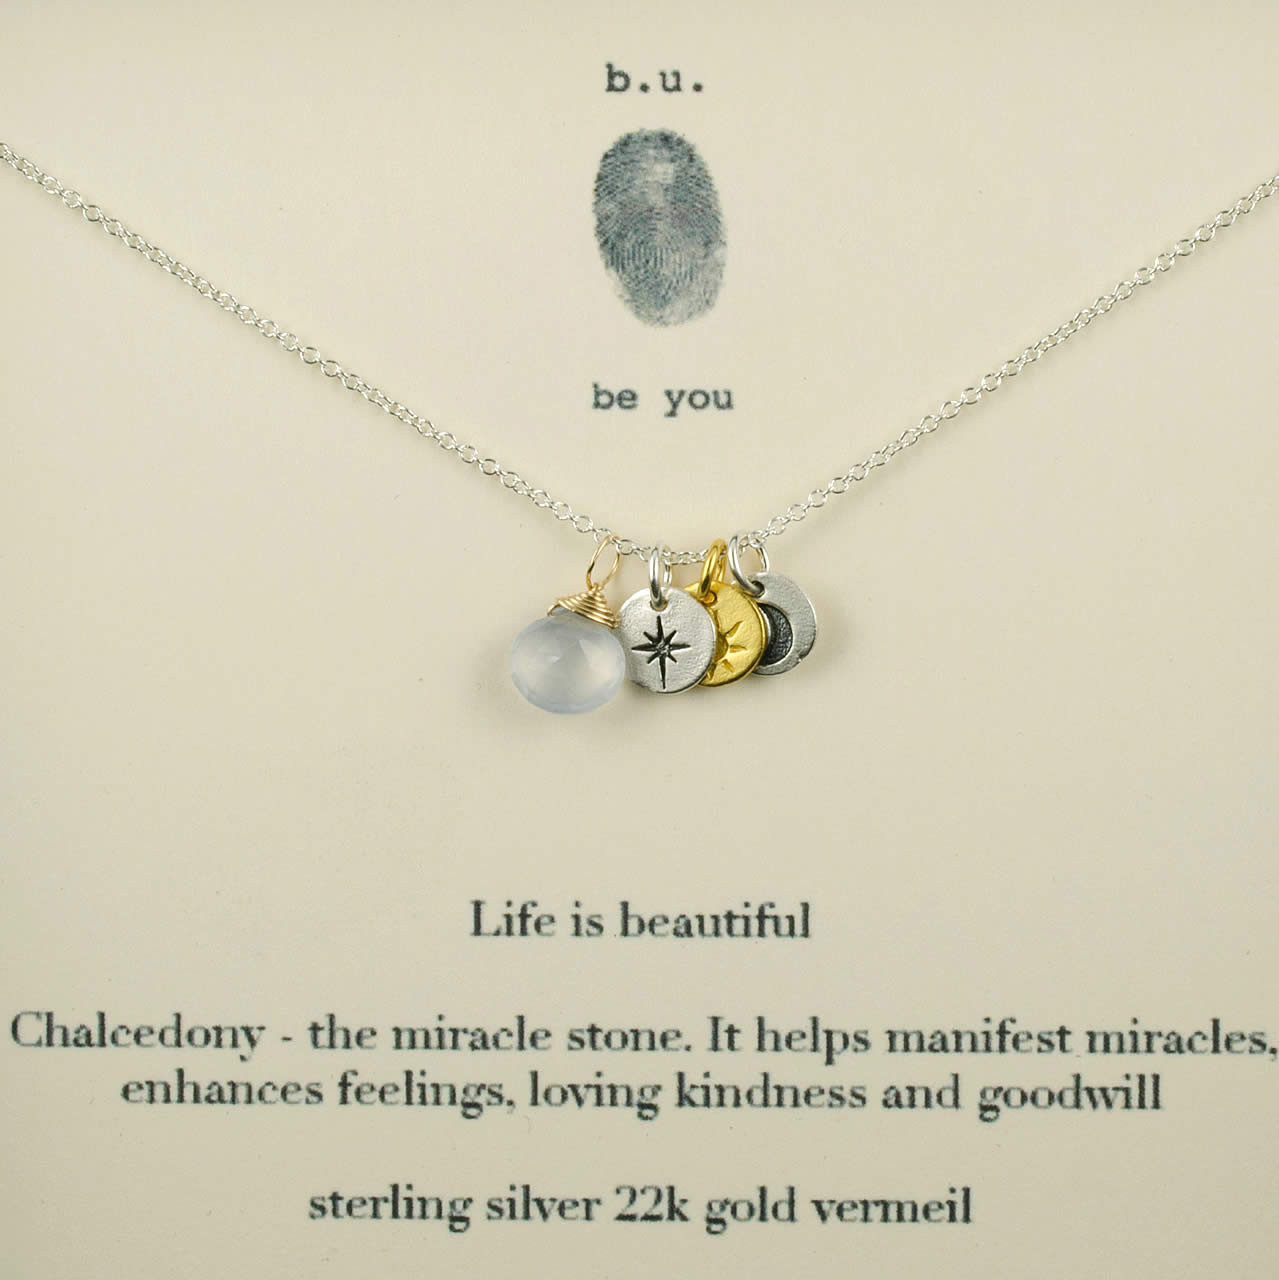 eca2e685b Life is Beautiful II Necklace | BU Jewelry | Chalcedony, Miracles, Kindness